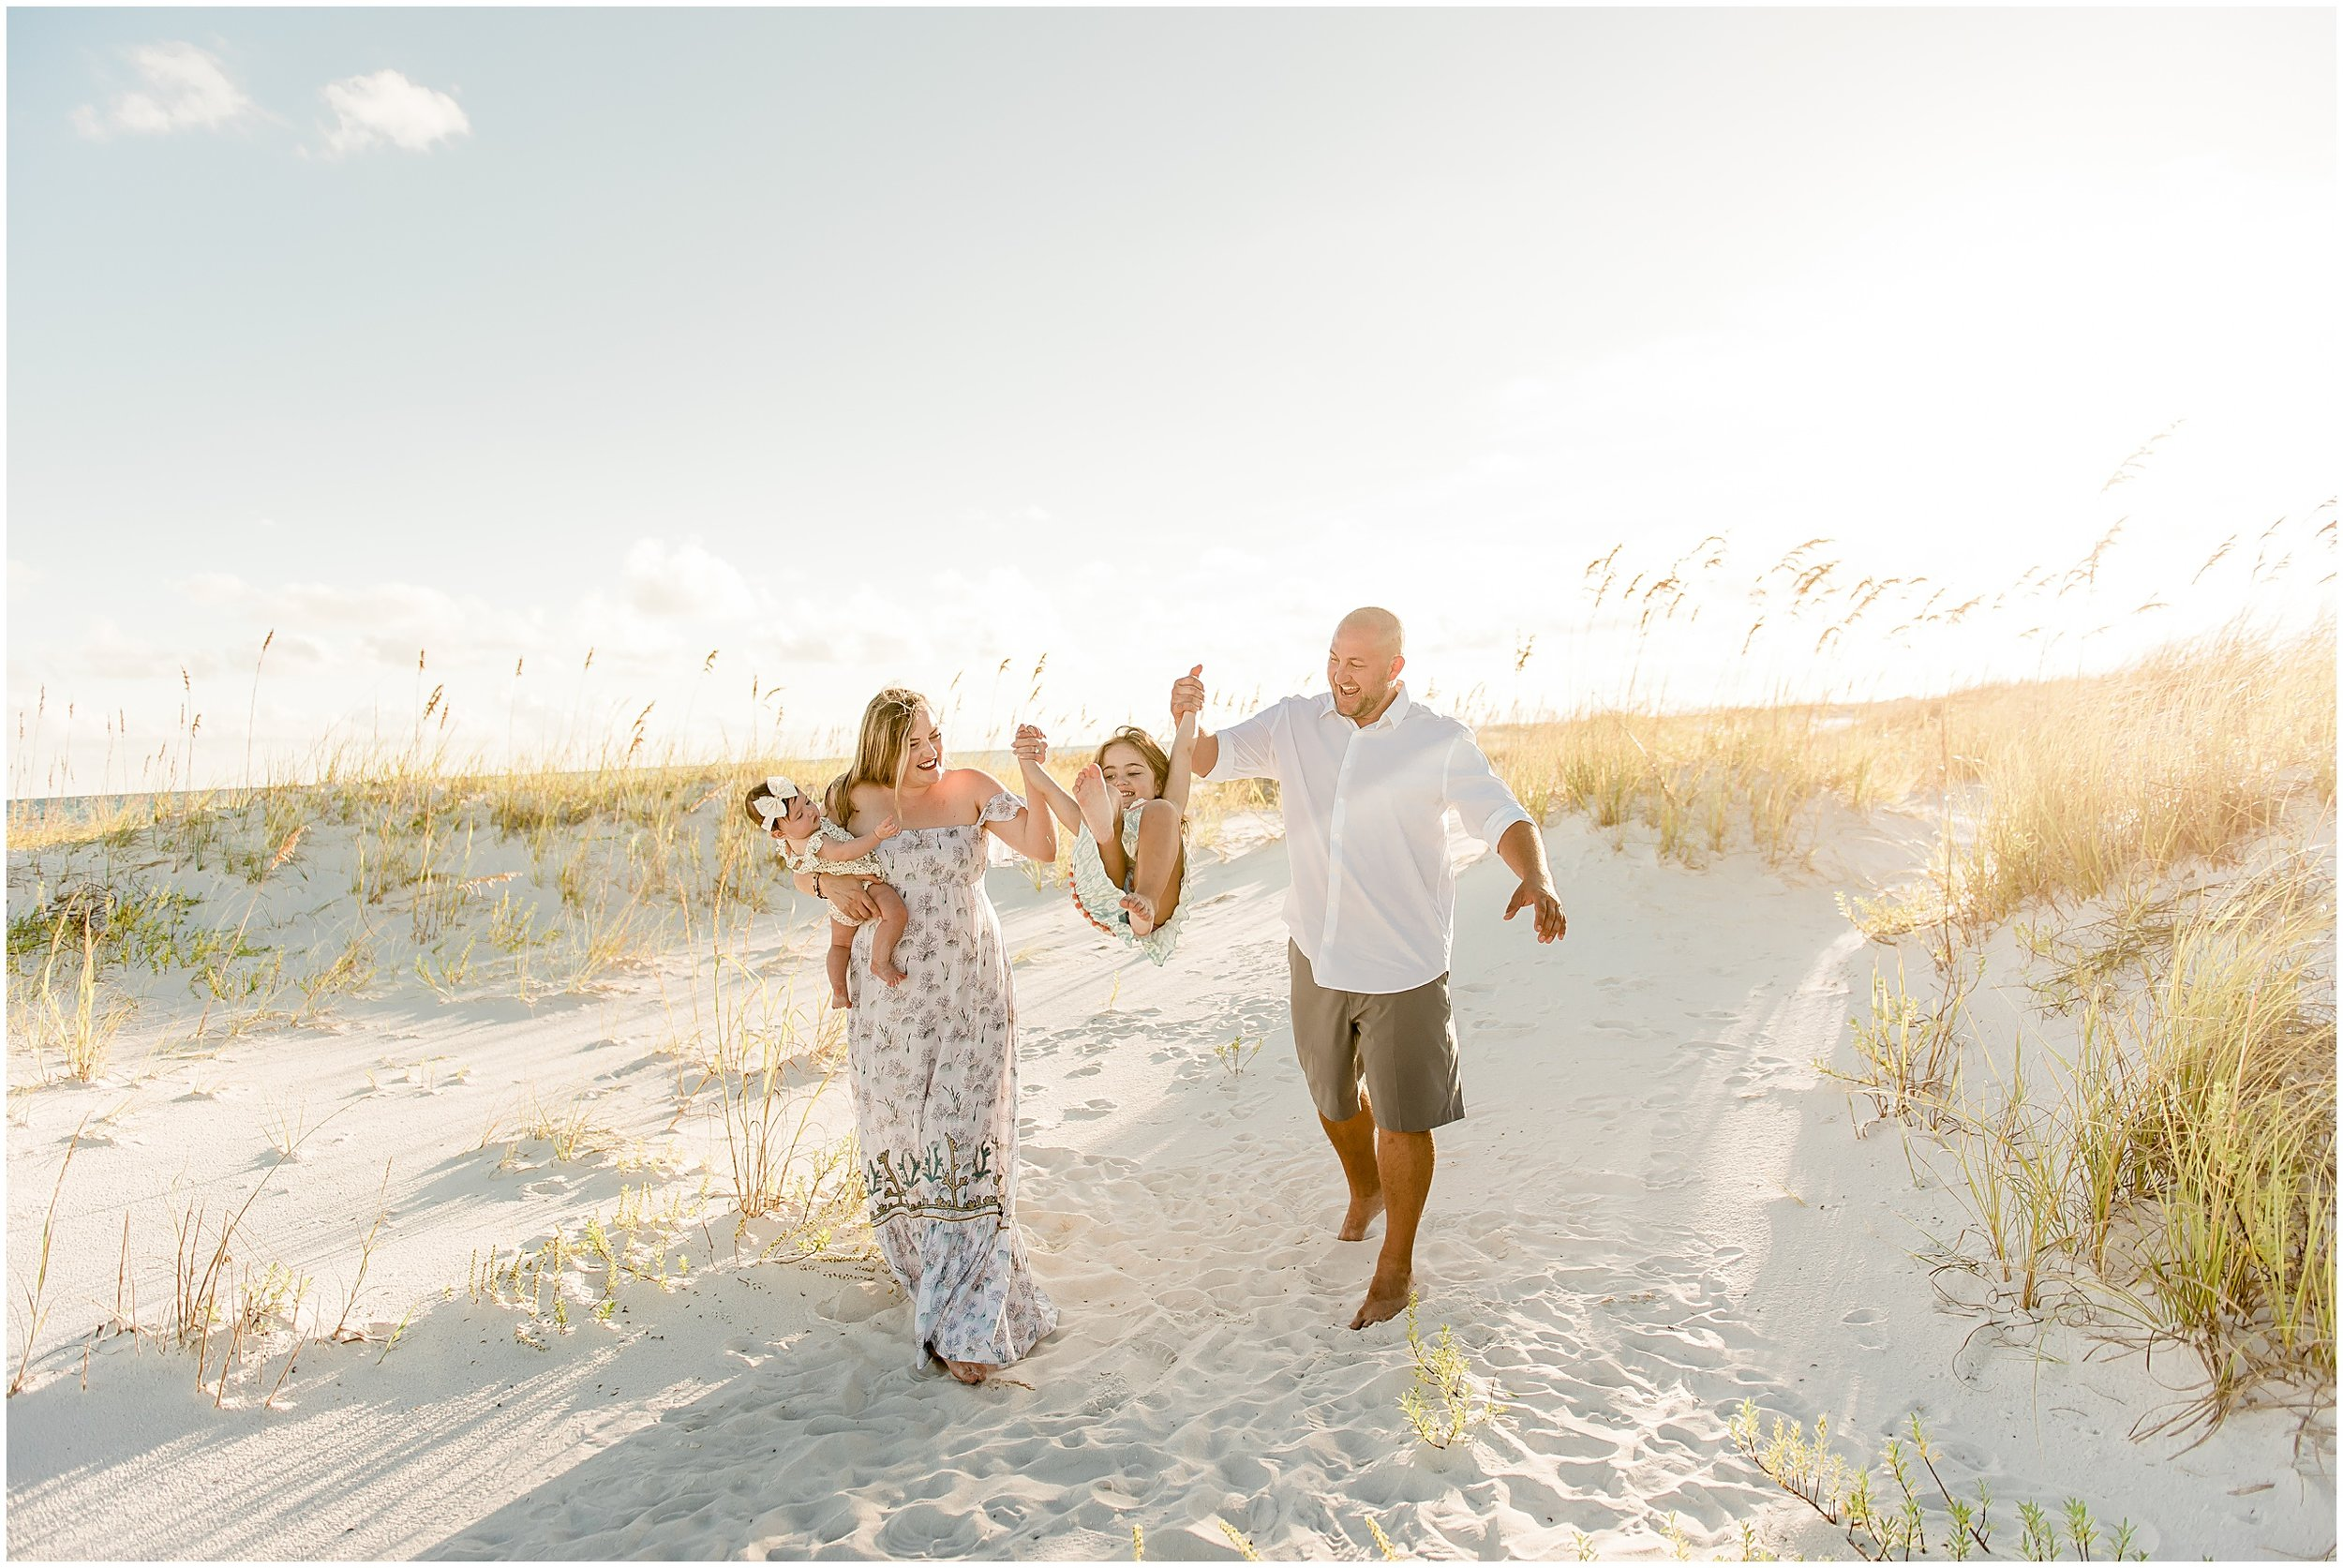 bestpensacolaweddingphotographer_1268.jpg